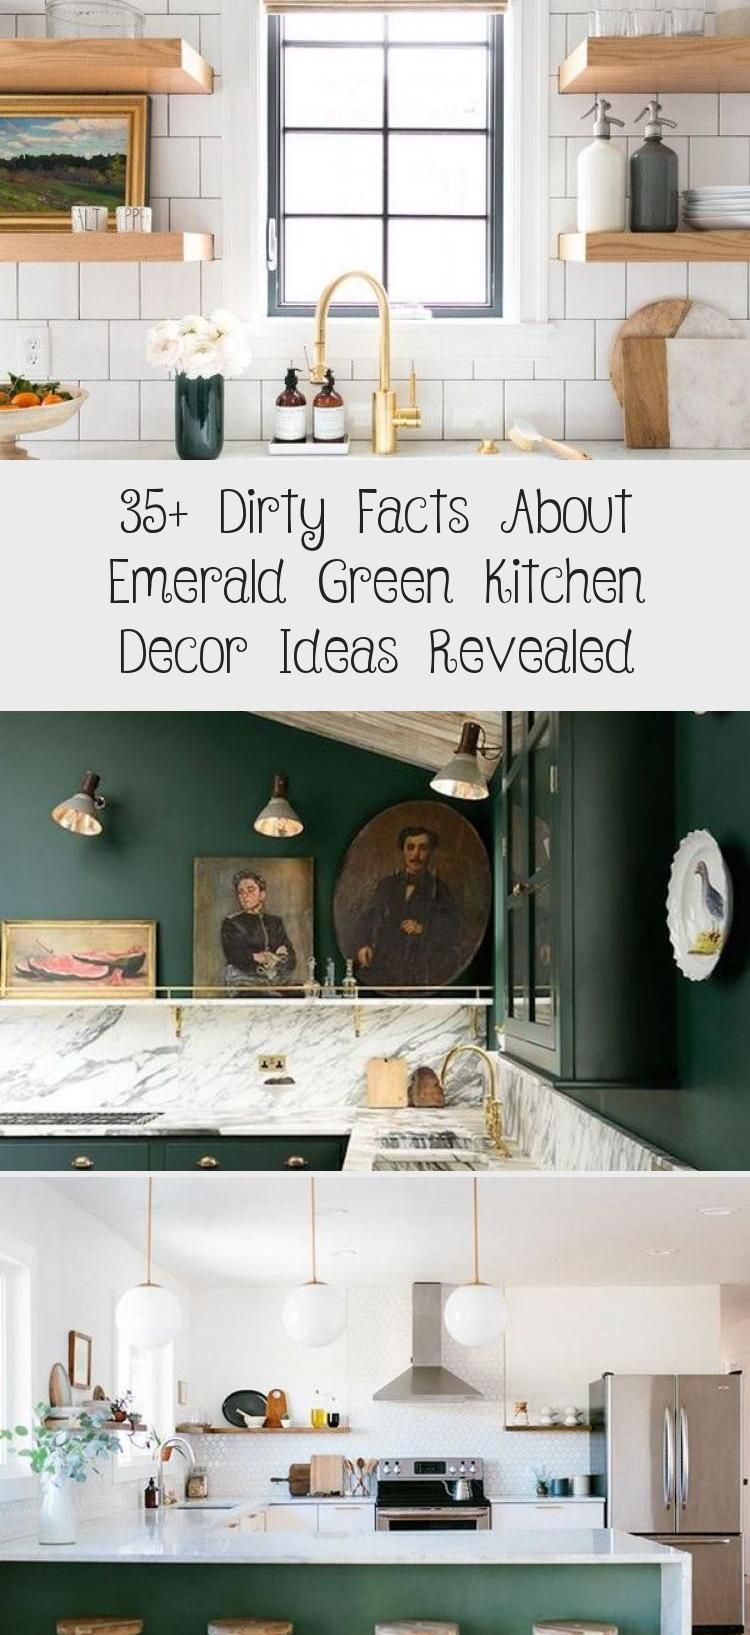 If You Intend To Remodel Your Kitchen Then The Option Of Kitchen Tiles And Its Designs Play An Extremel In 2020 Green Kitchen Decor Kitchen Tiles Design Kitchen Decor